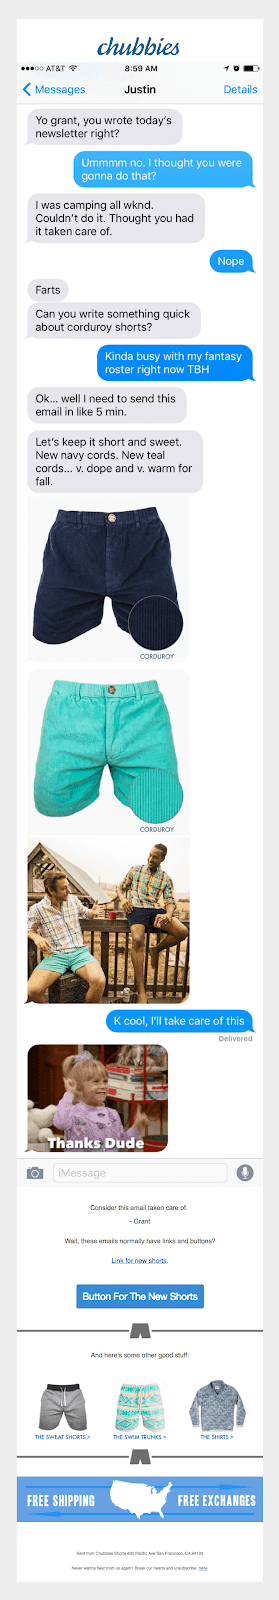 chubbies promotional email showing how to write a compelling sales email